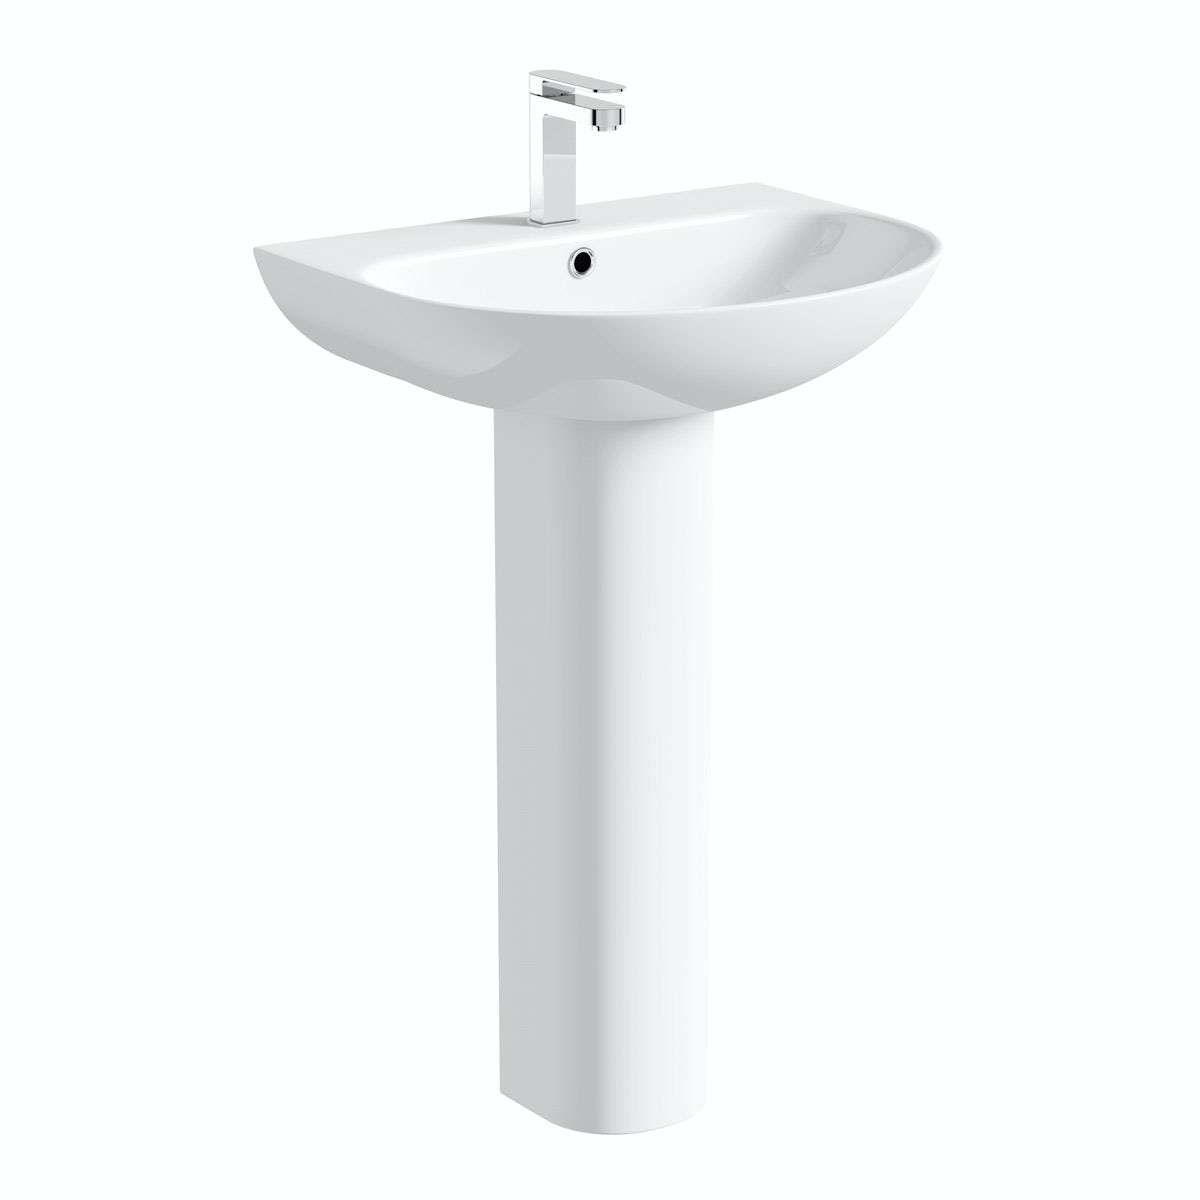 Mode Harrison 1 tap hole full pedestal basin 555mm with waste